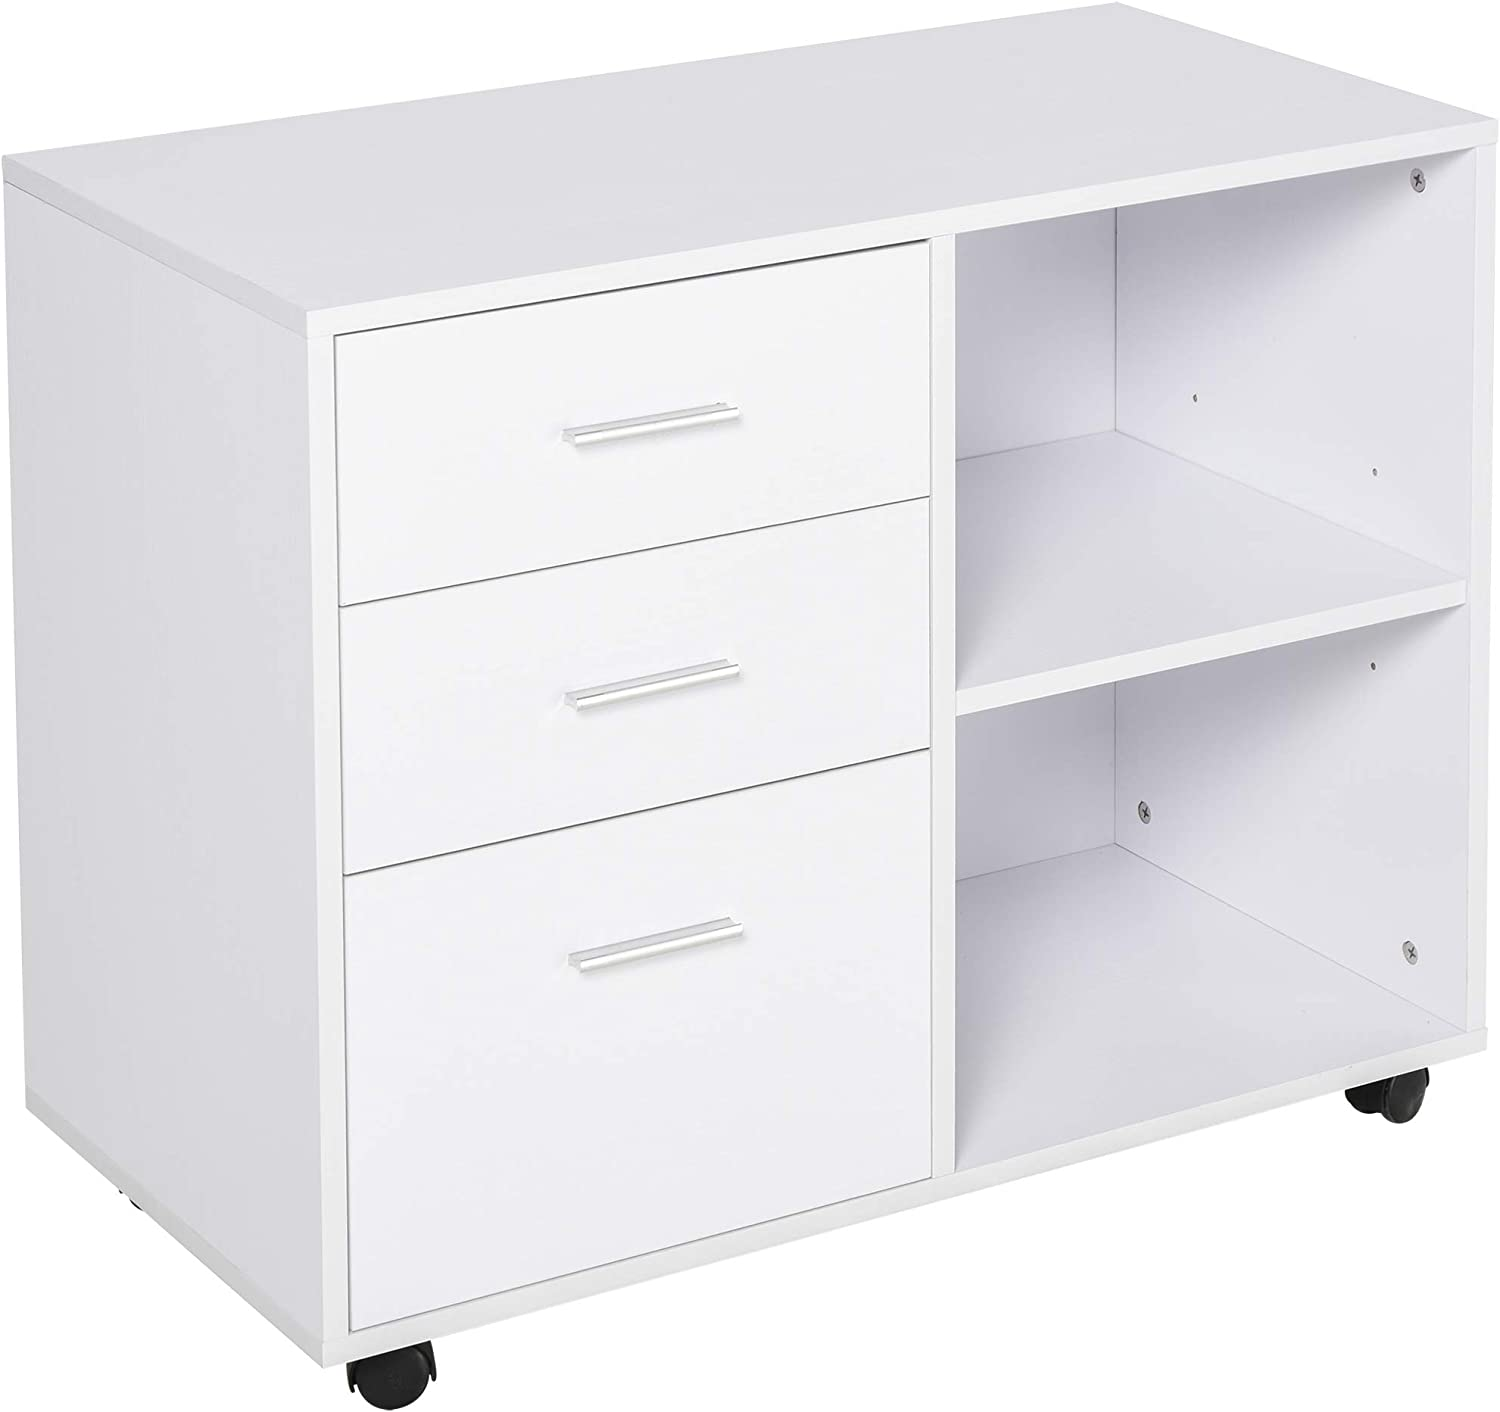 HOMCOM Indoor Office Filing Surprise price Cabinet 3 with Storage Drawers Open Many popular brands